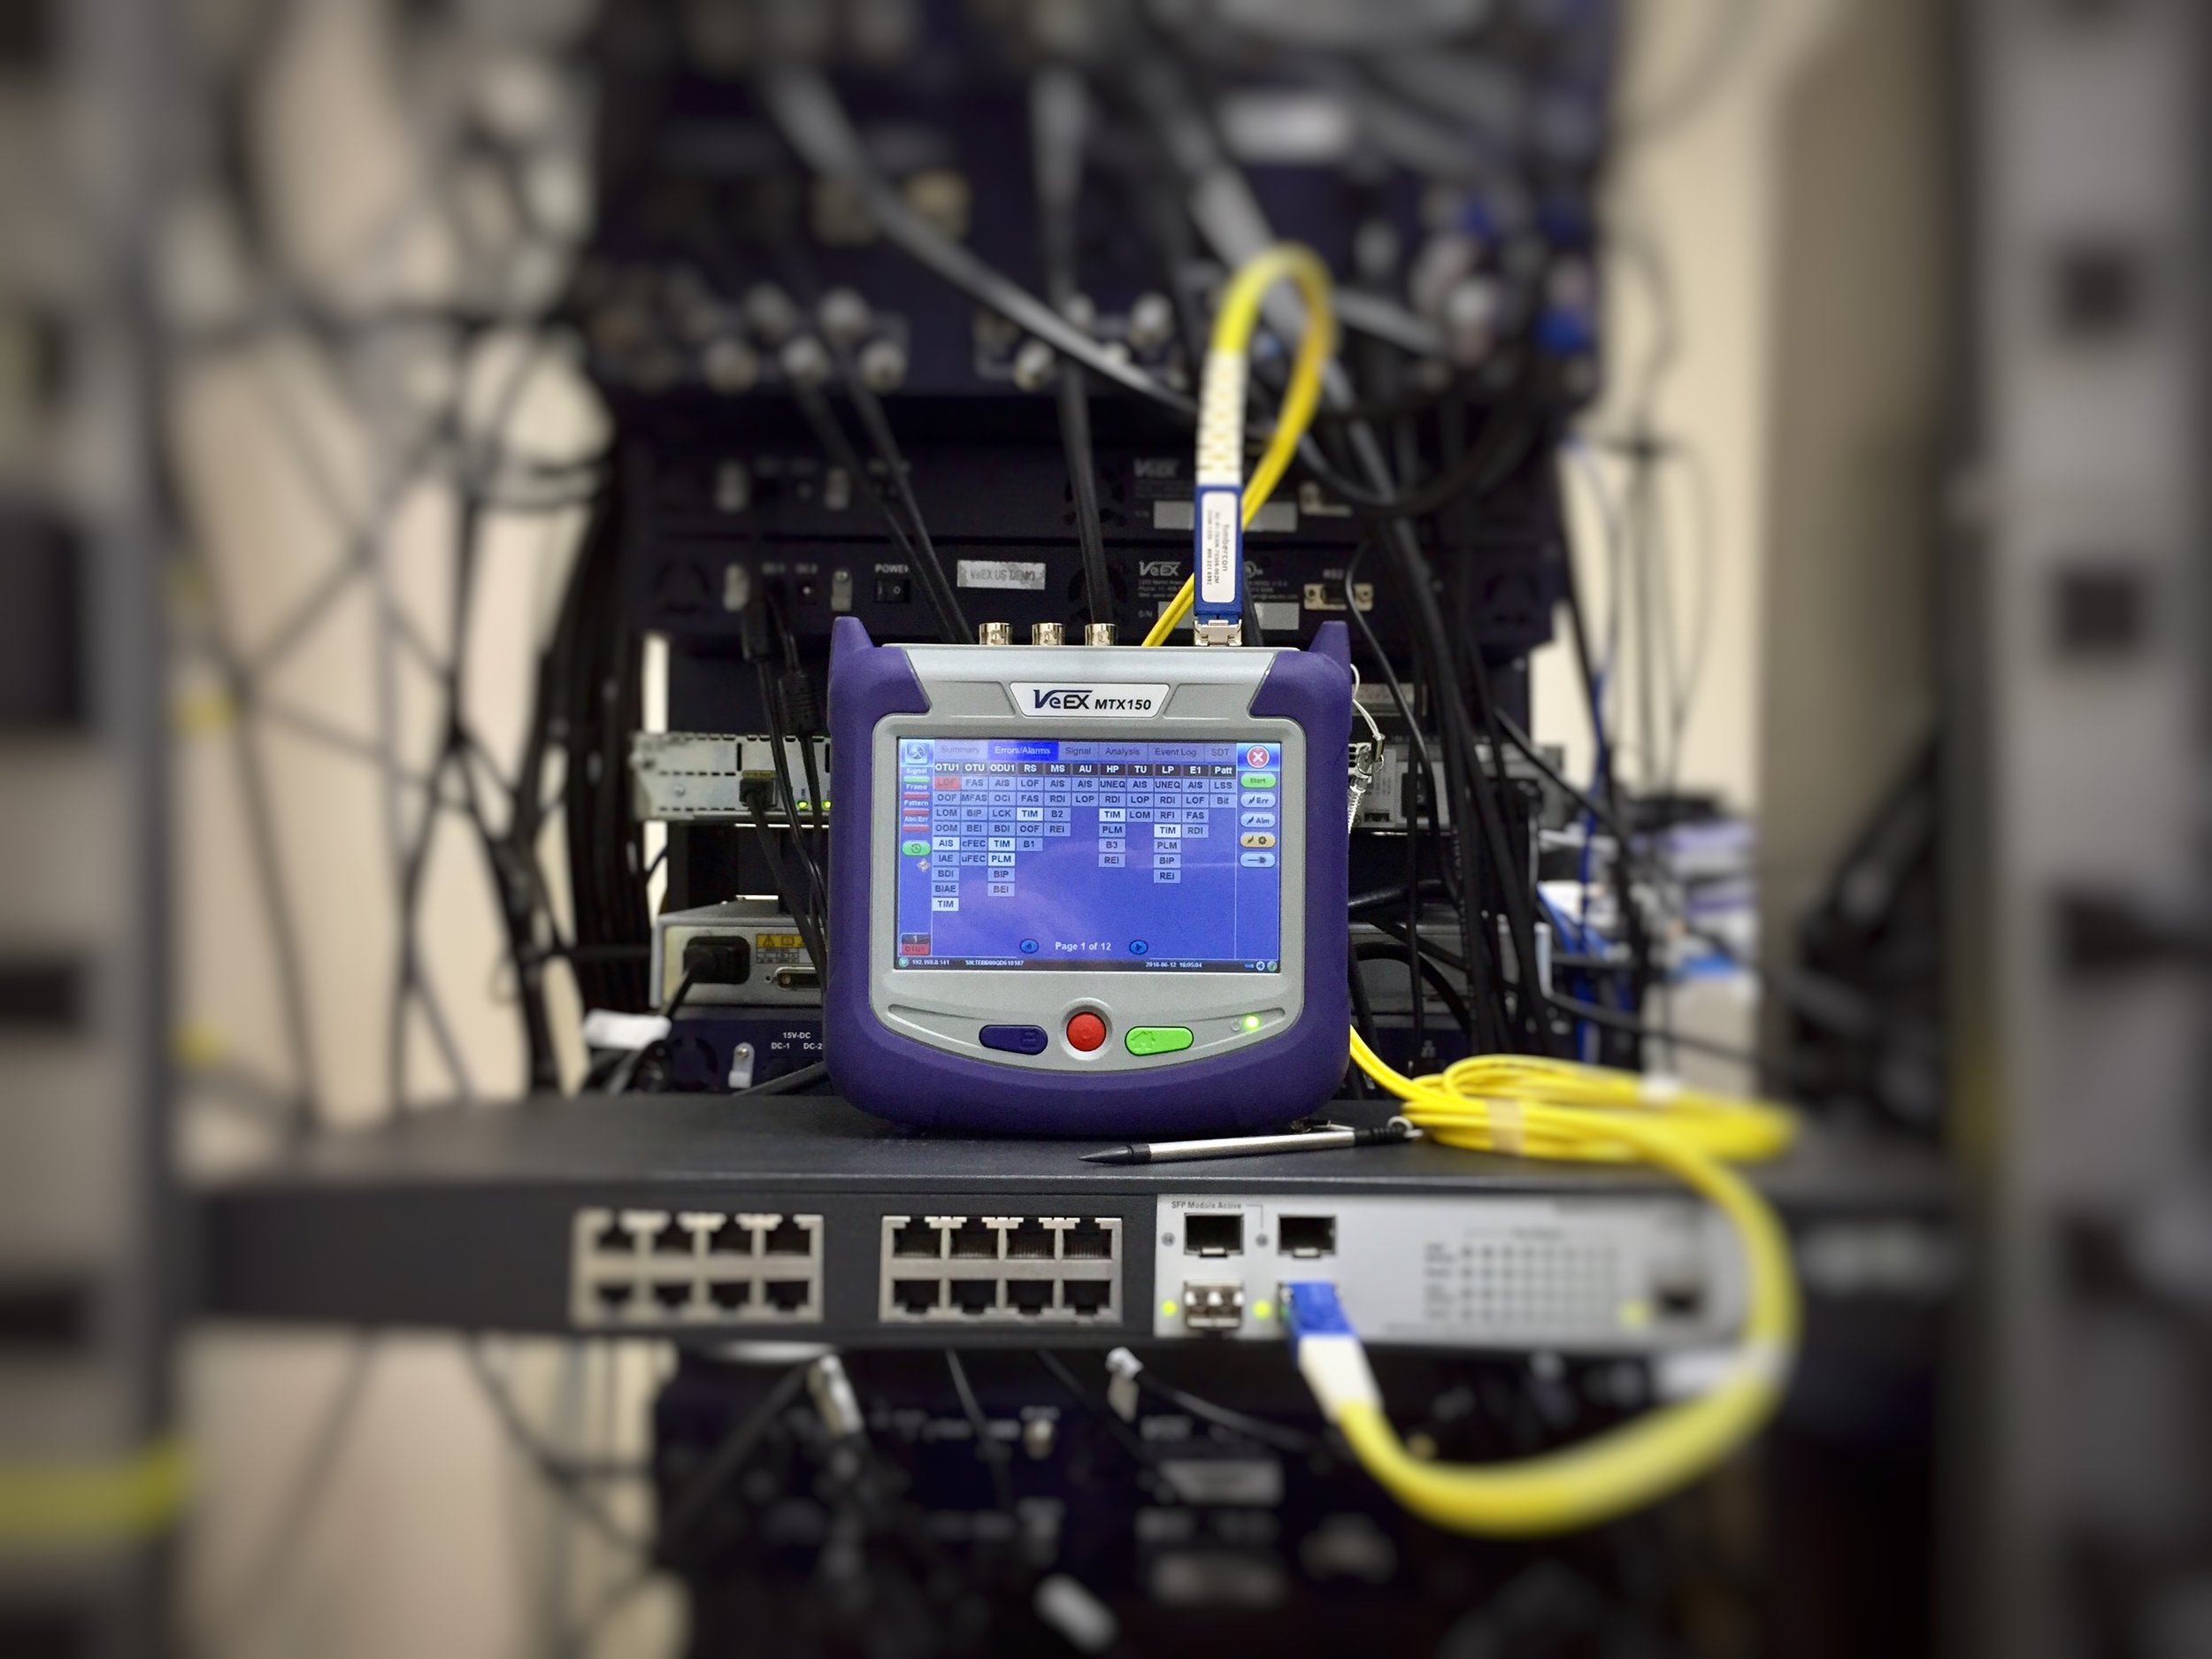 Commissioning - Commissioning is the testing of every device, process and procedure in an integrated system to ensure the final specification operates as planned and according to the owner's design…